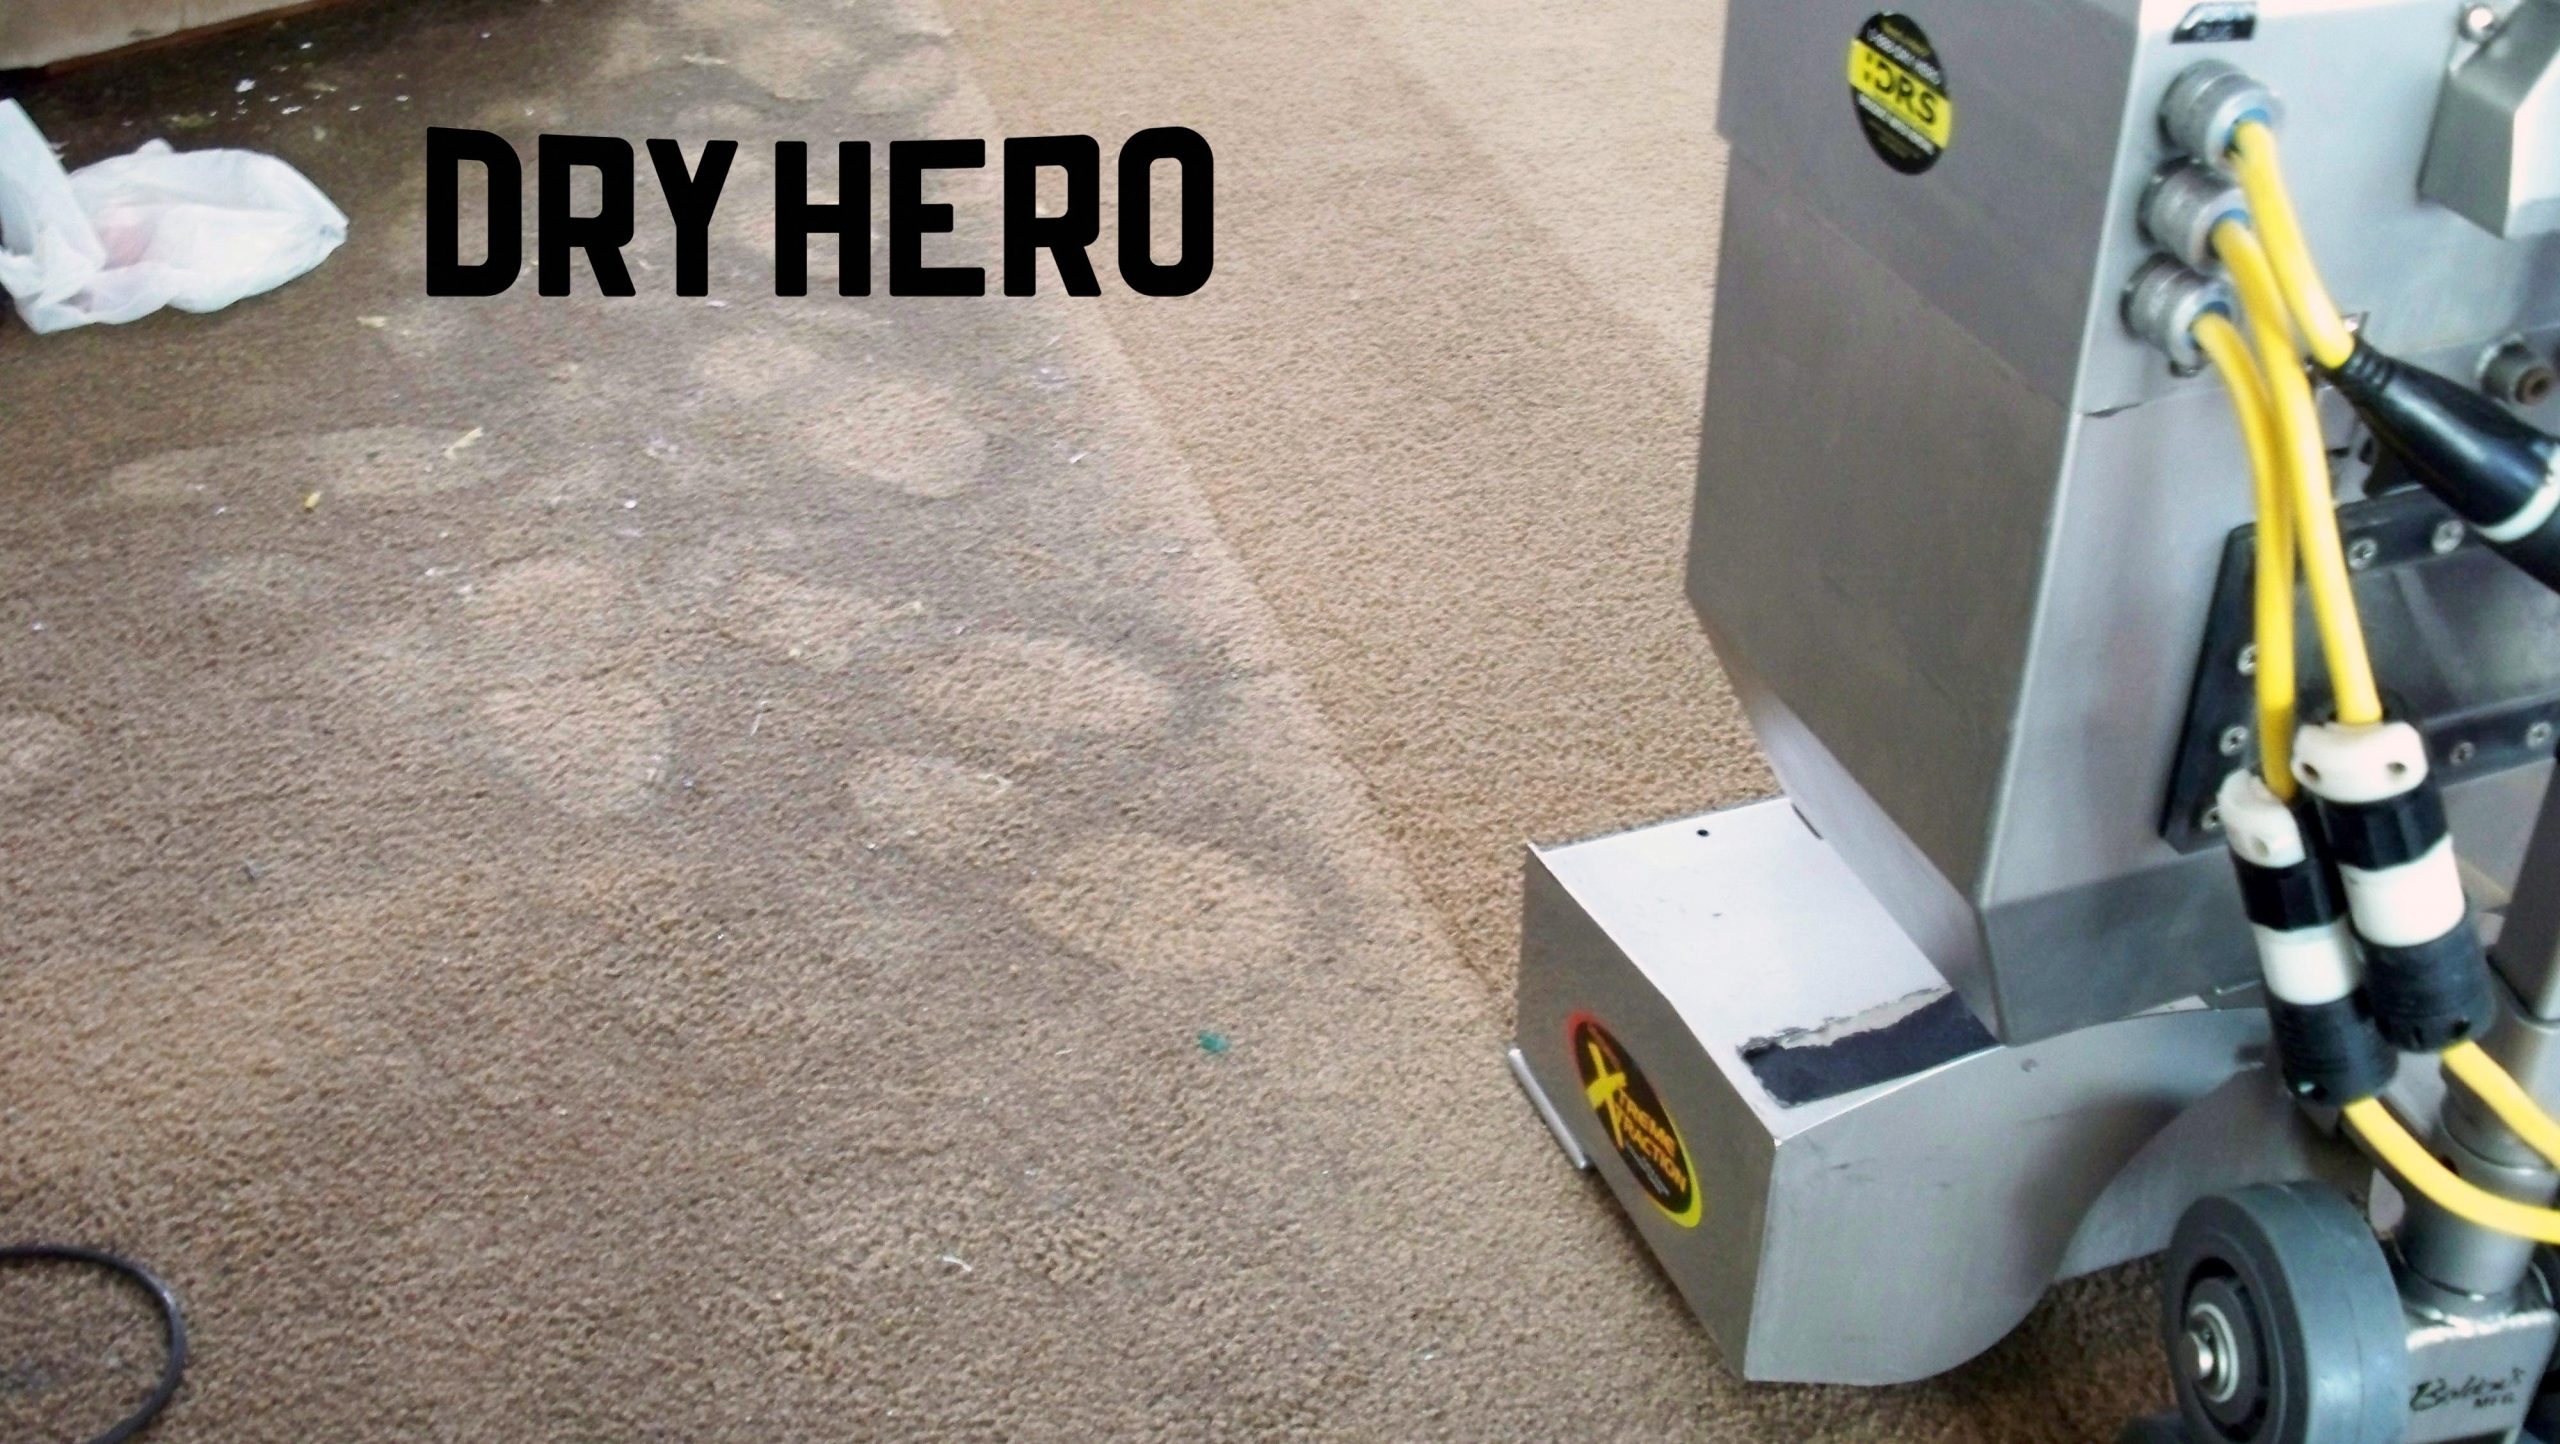 DryHero Water Mold Lincoln Water Damage Restoration Emergency Water Removal